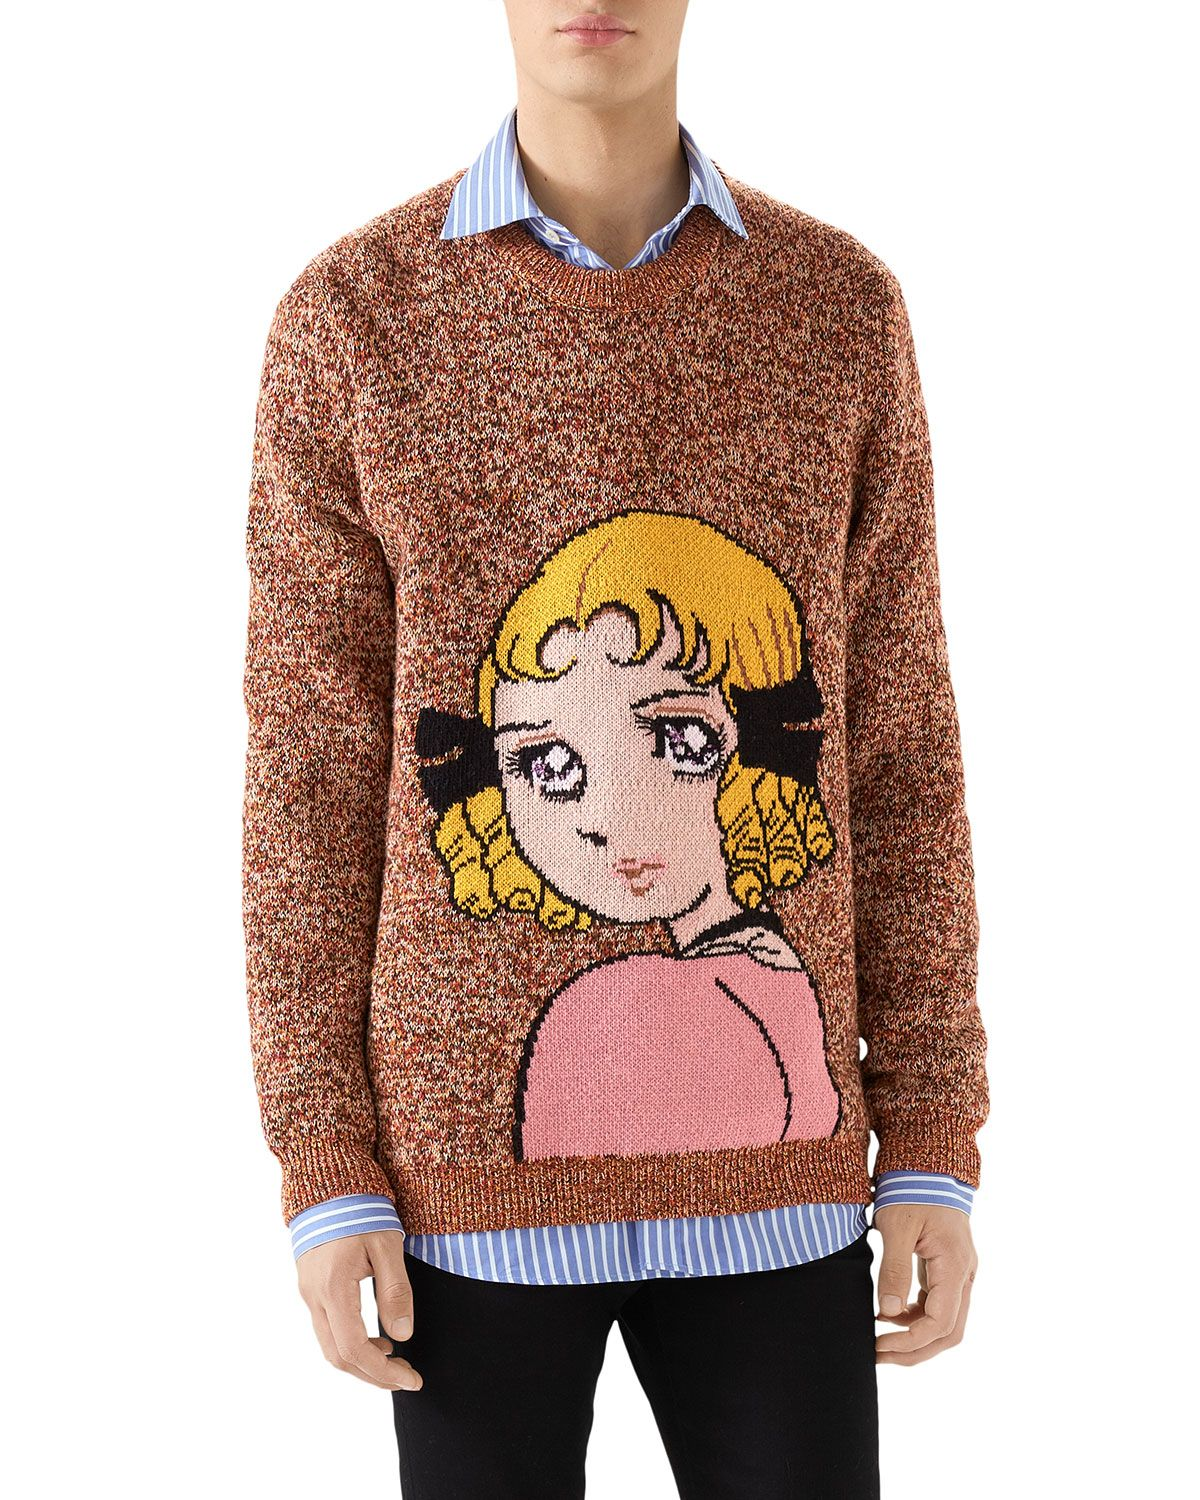 b20b7b8dfa4 GUCCI MEN S GIRL-GRAPHIC HEATHERED SWEATER.  gucci  cloth